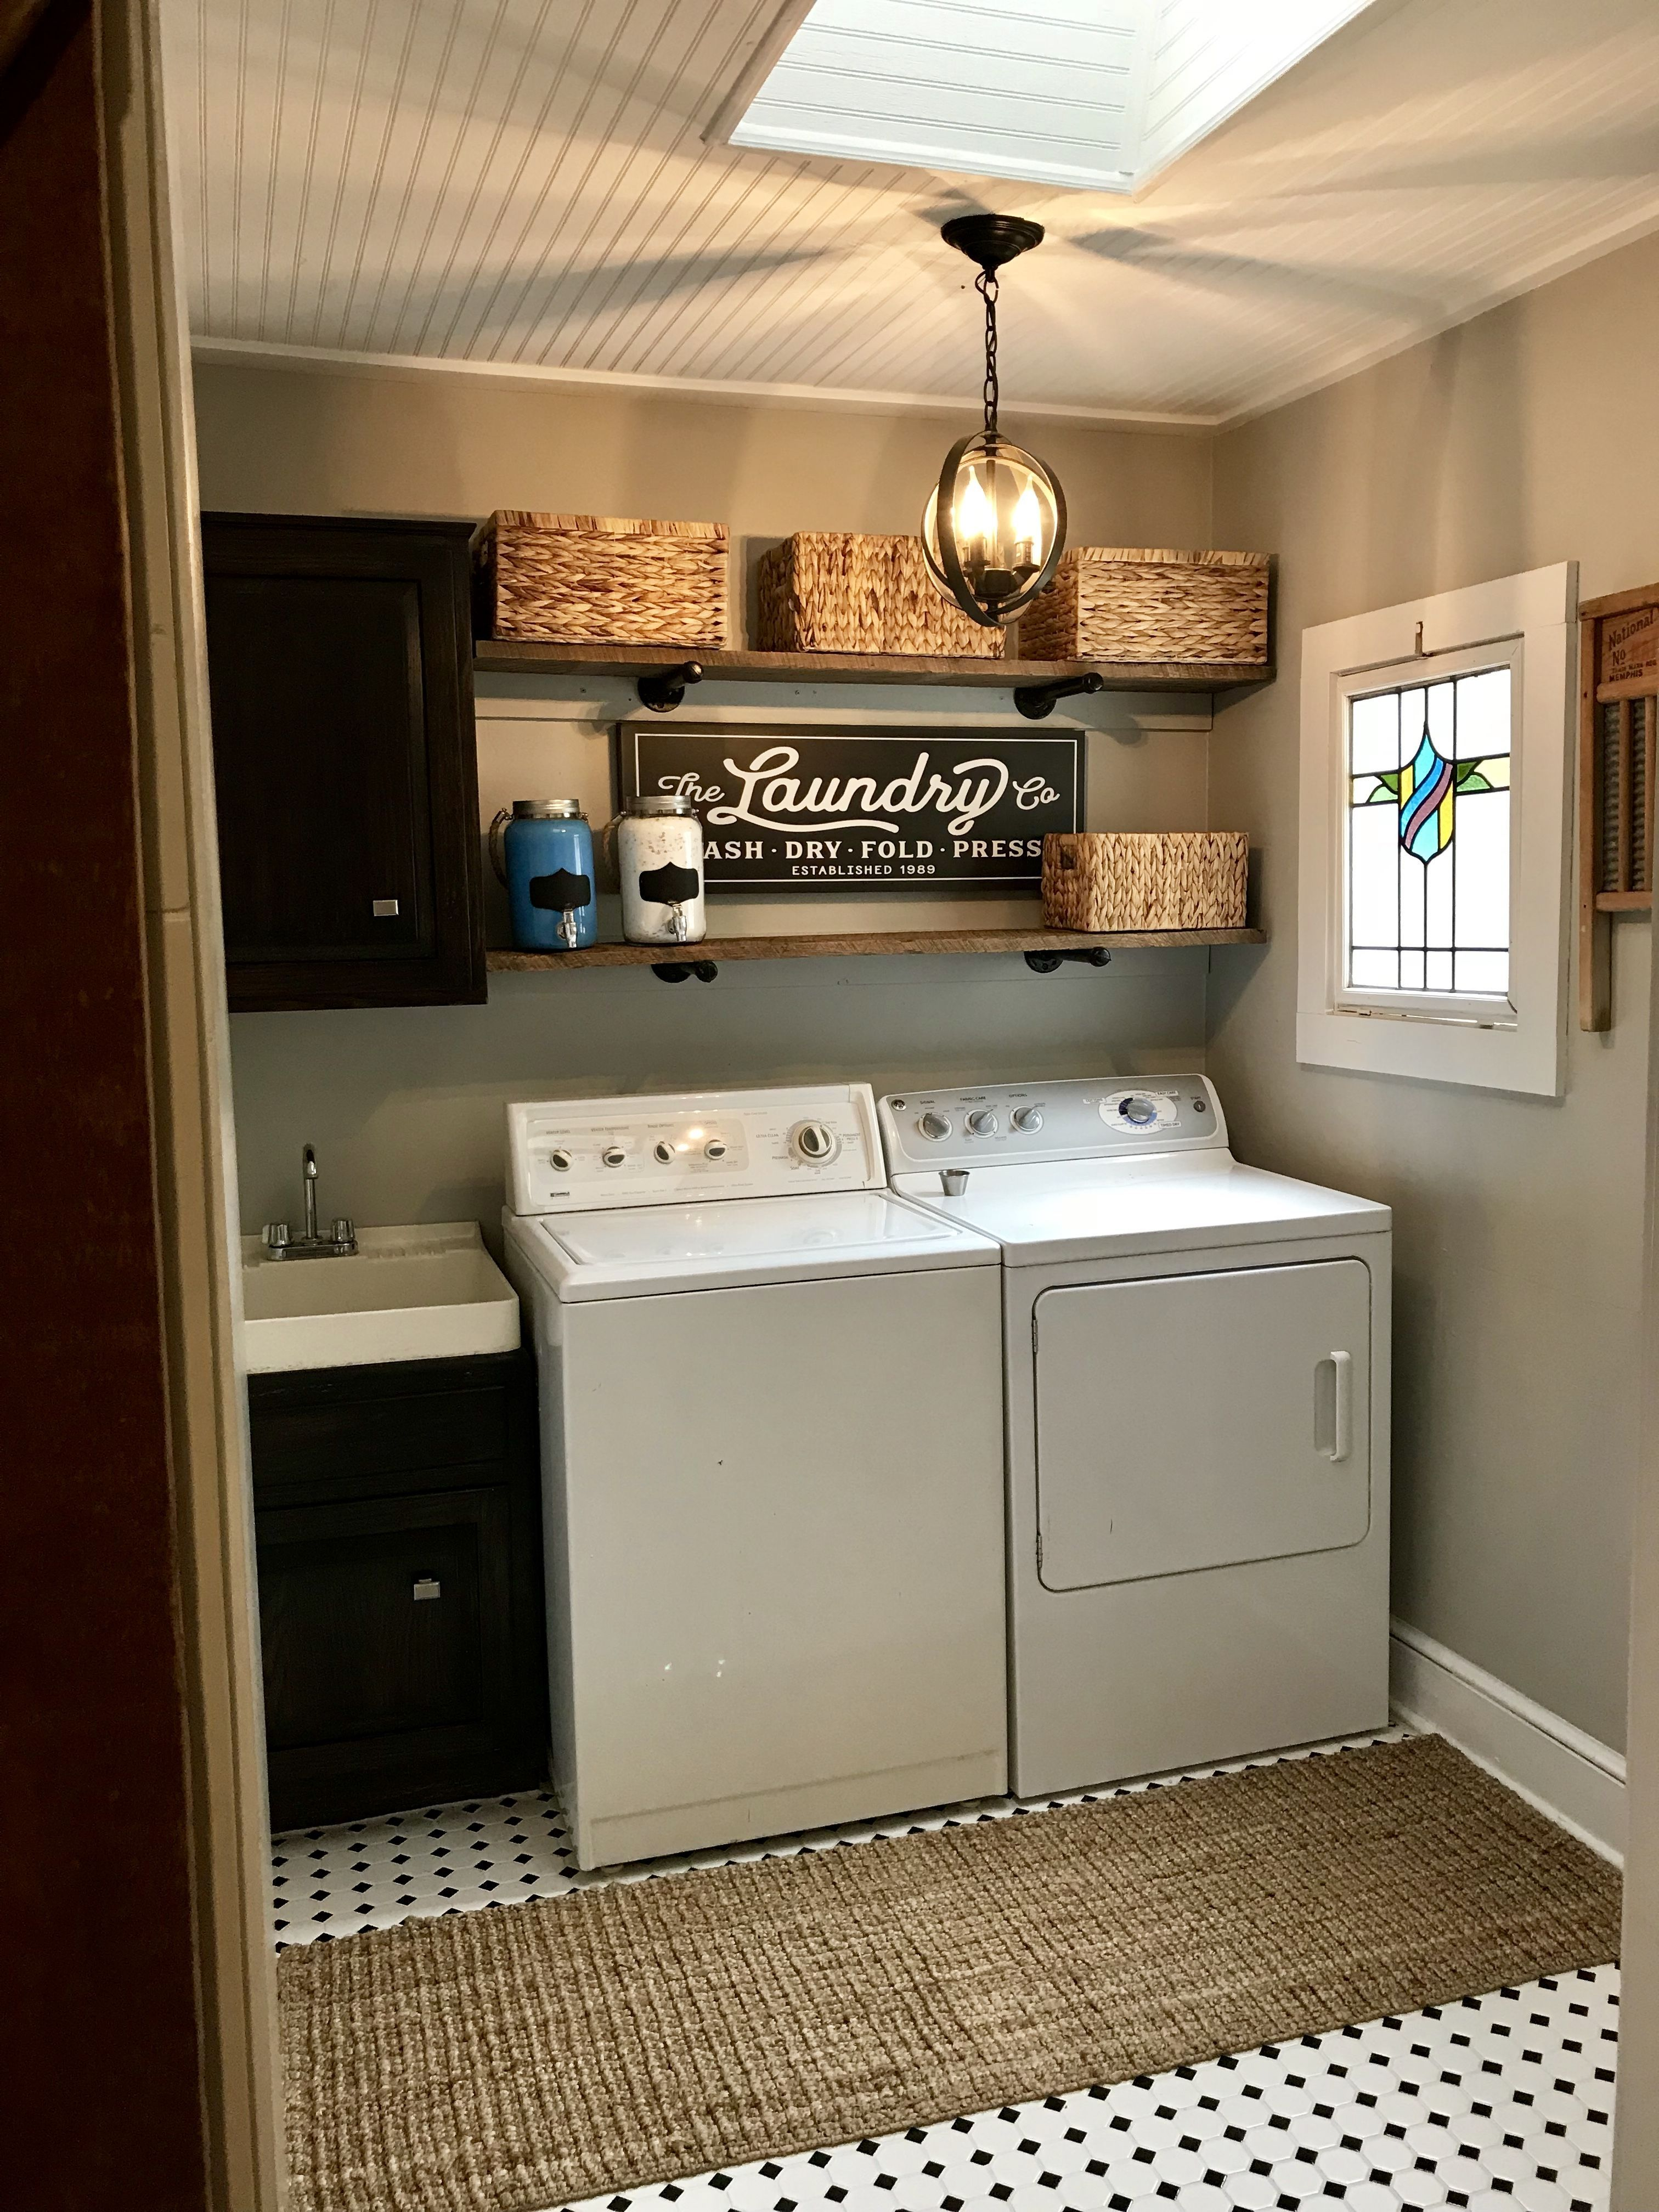 19 Most Beautiful Vintage Laundry Room Decor Ideas (eye-catching looks) images